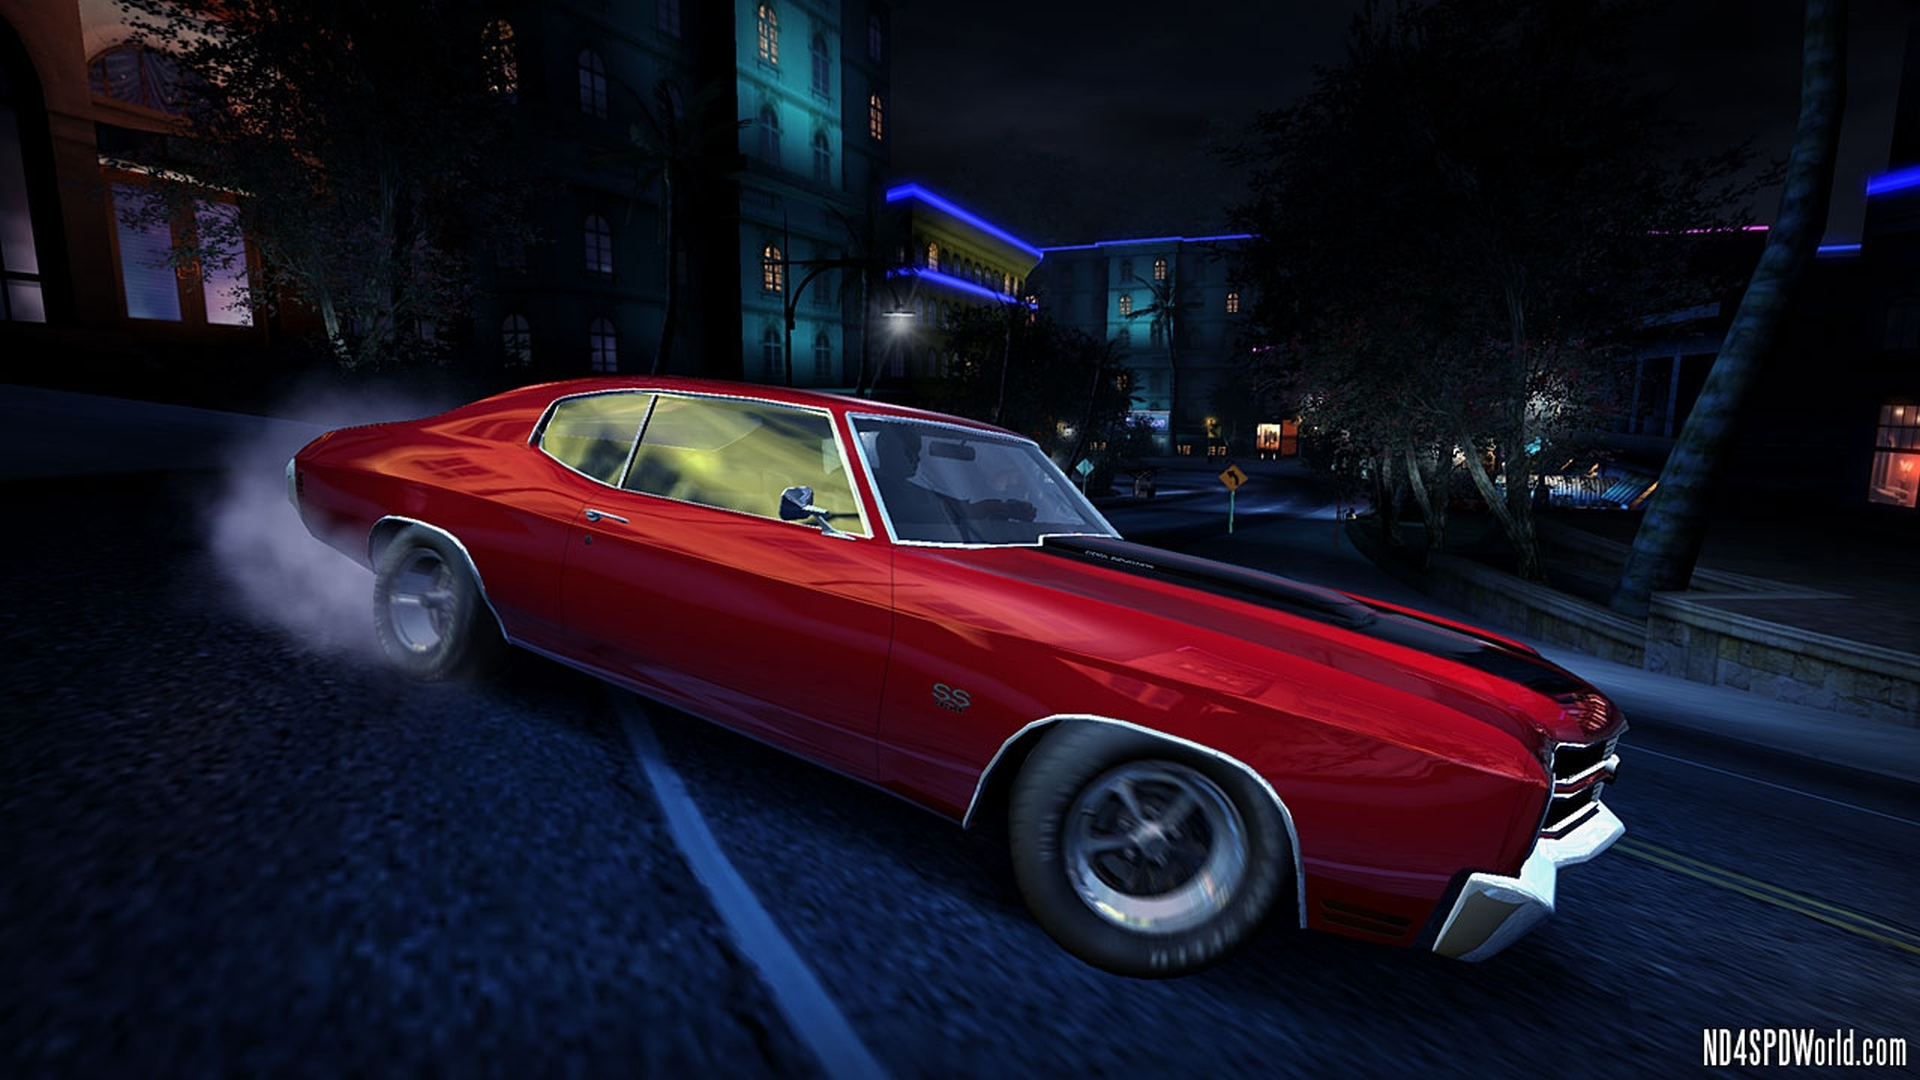 Chevelle Ss Wallpaper Chevrolet Chevelle Ss Hd Wallpaper Background Image 1920x1080